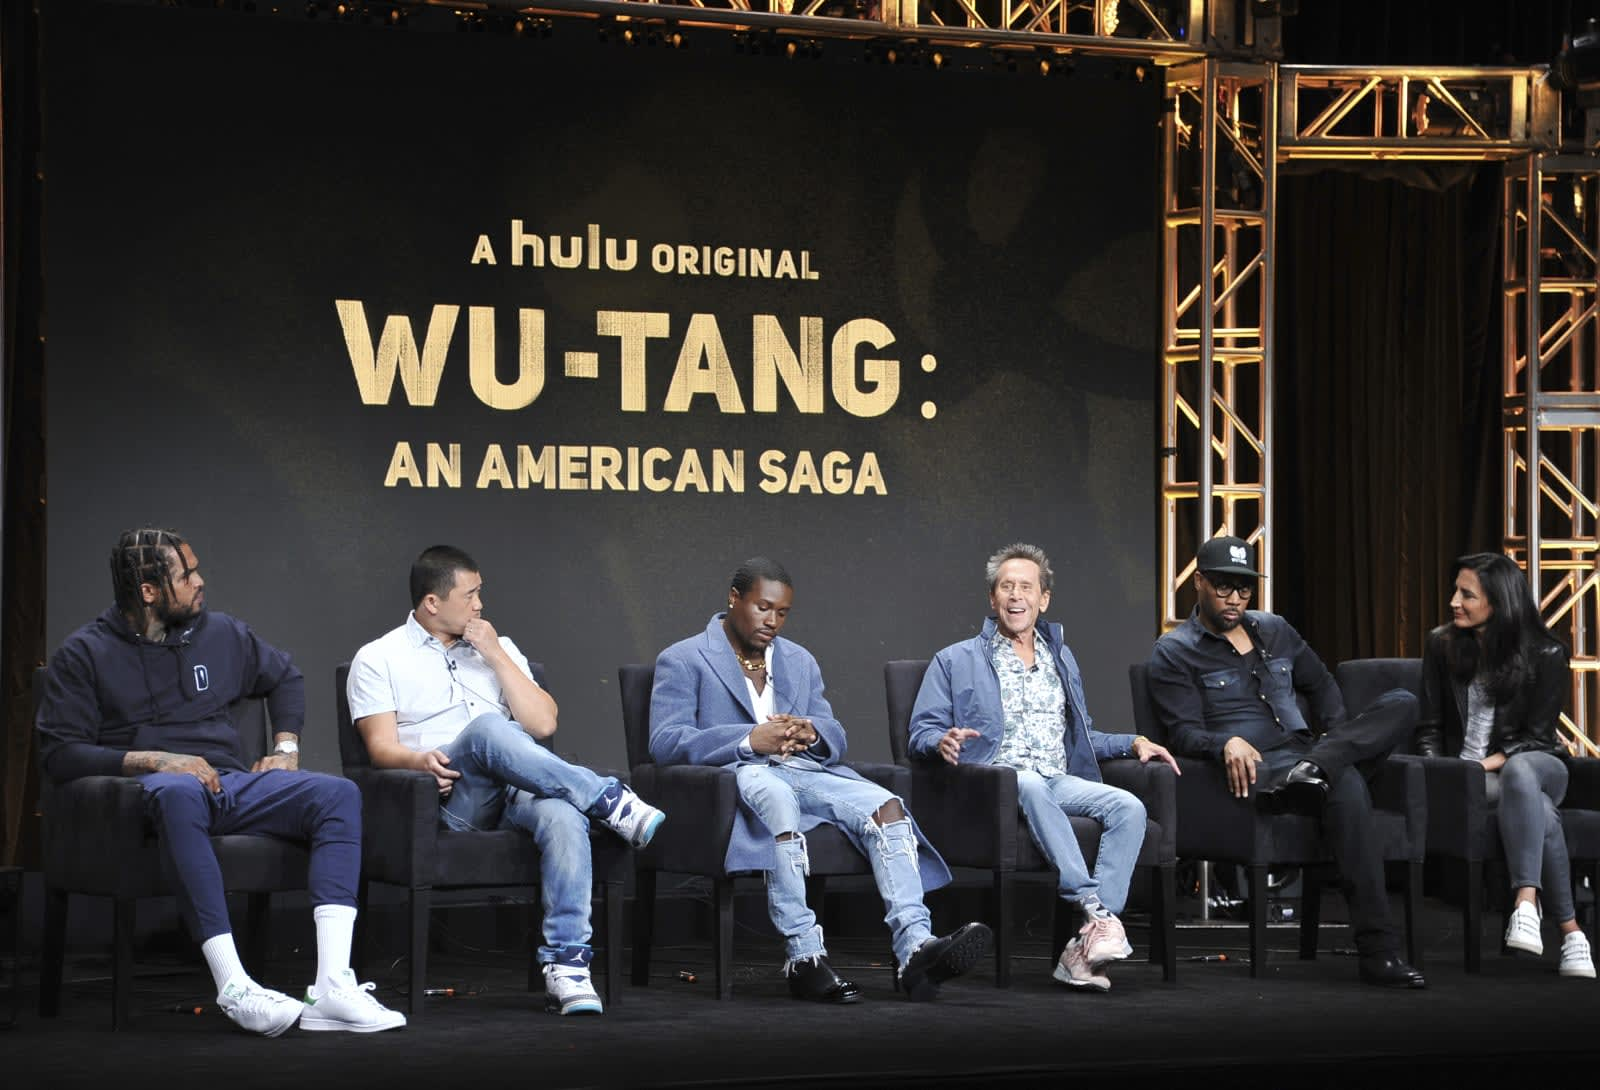 New On Hulu September 2019 Hulu's Wu Tang Clan series debuts September 4th